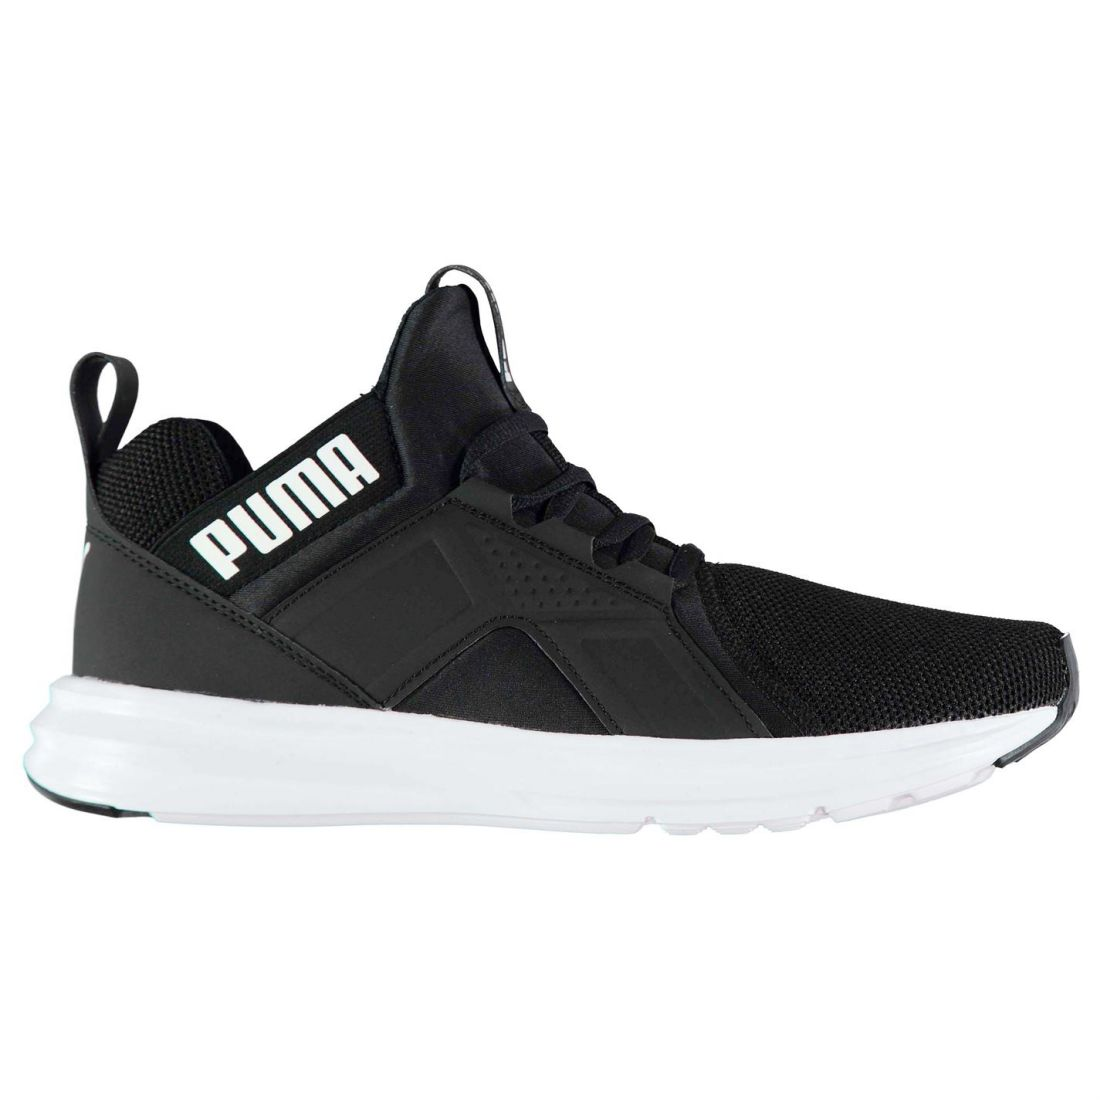 a1ef9ad1ed86 Puma Mens Enzo Mesh Runners Shoes Running Cross Training Sports Lace ...